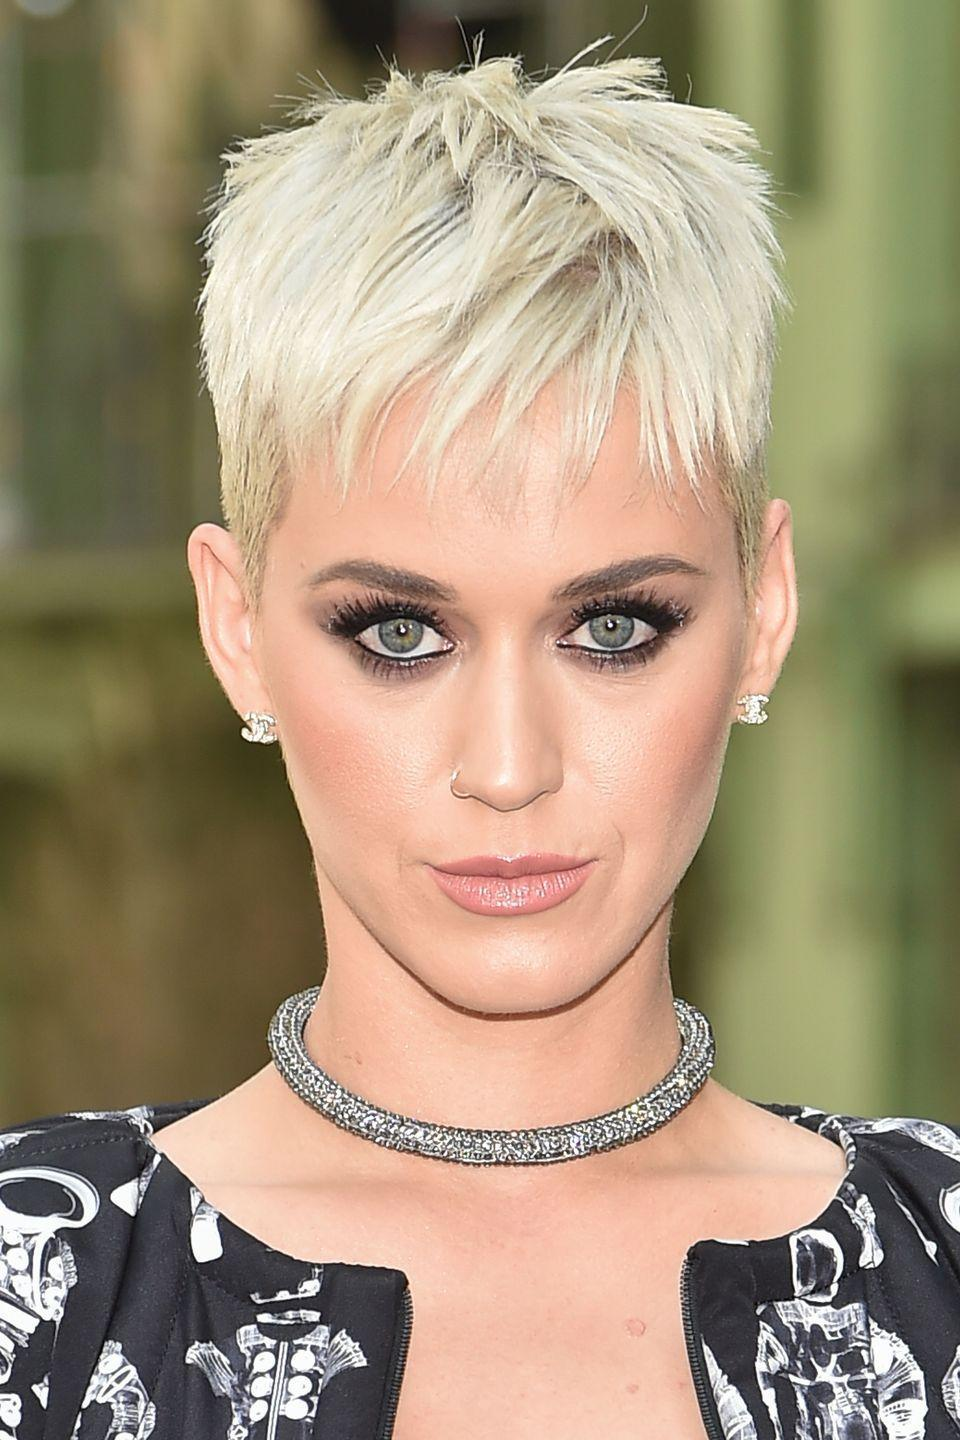 <p>Perry stepped out with an icy white choppy pixie crop.</p>